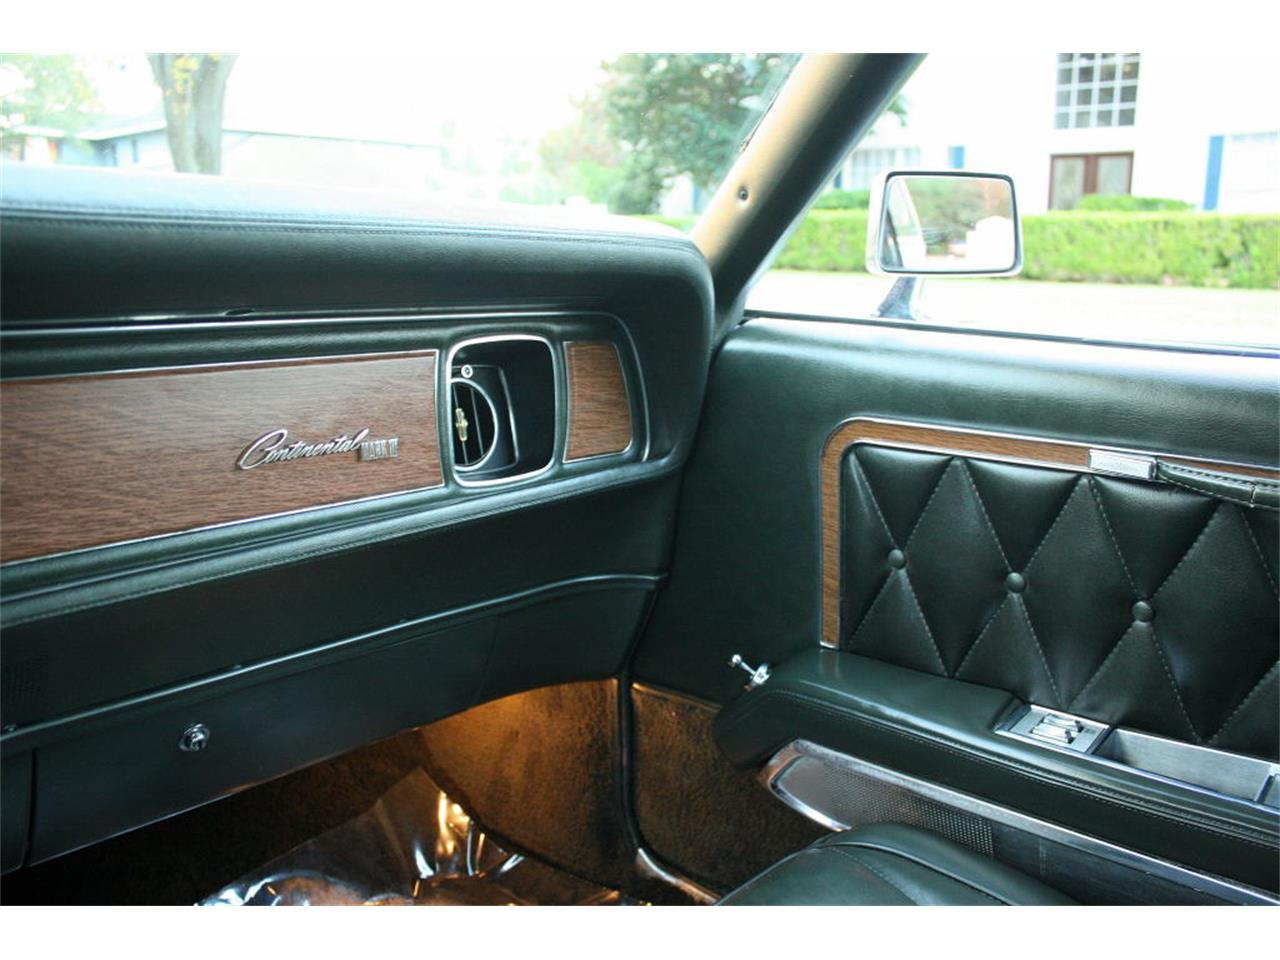 Large Picture of 1969 Lincoln Continental Mark III located in Lakeland Florida - $24,500.00 - OPDW